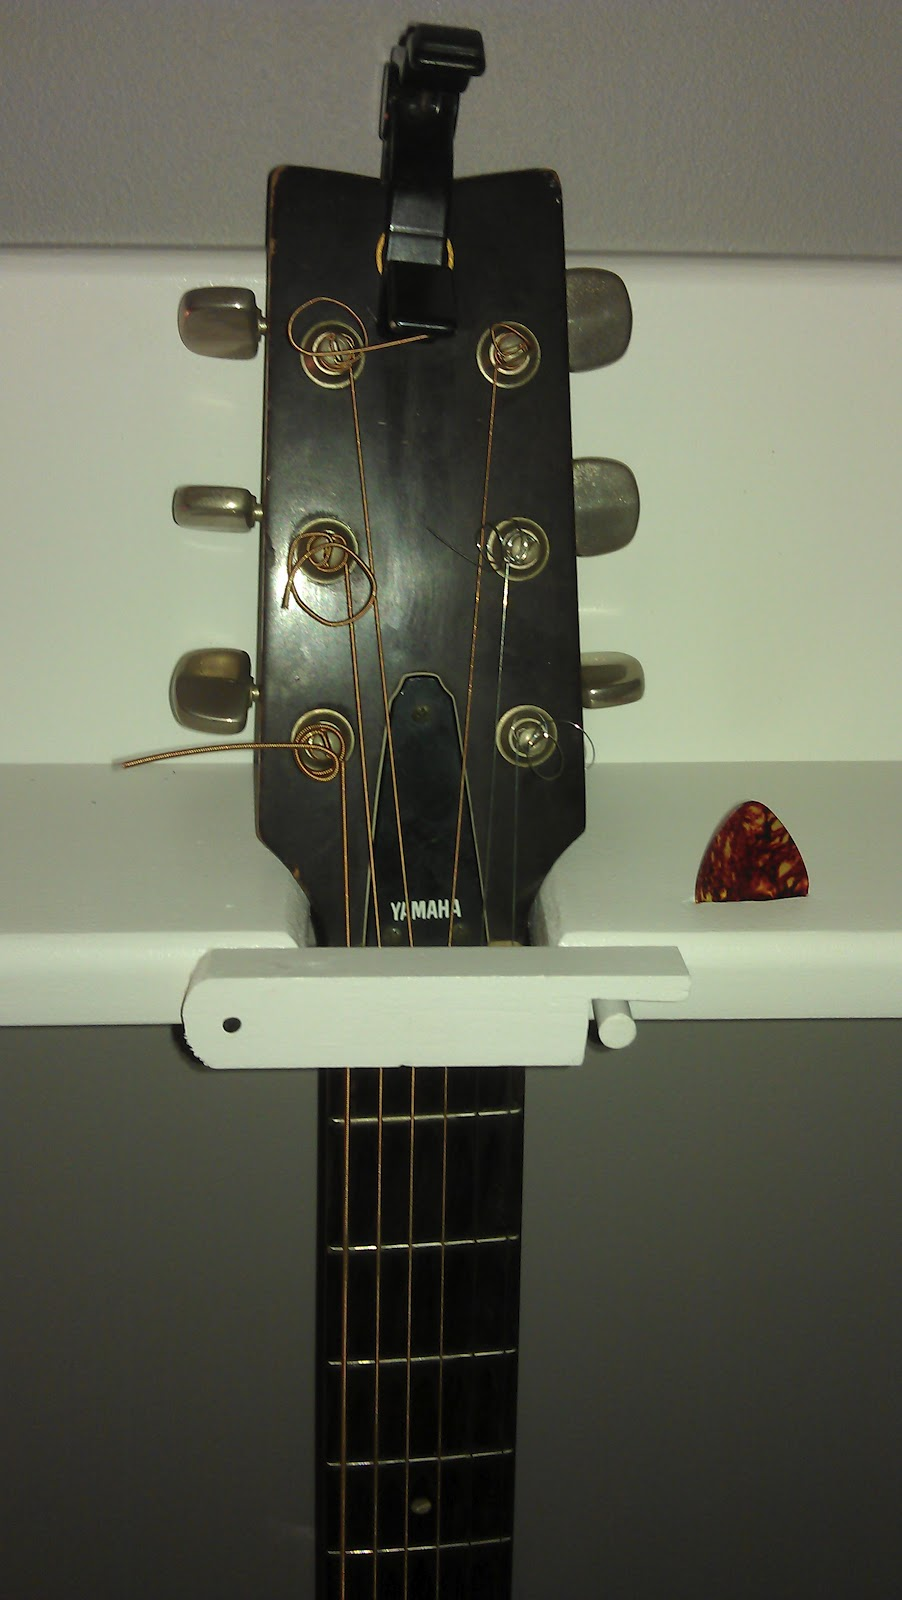 DIY: 4-Guitar Wall Hanger. Cost: $15ish. FEATURED AS AN ...